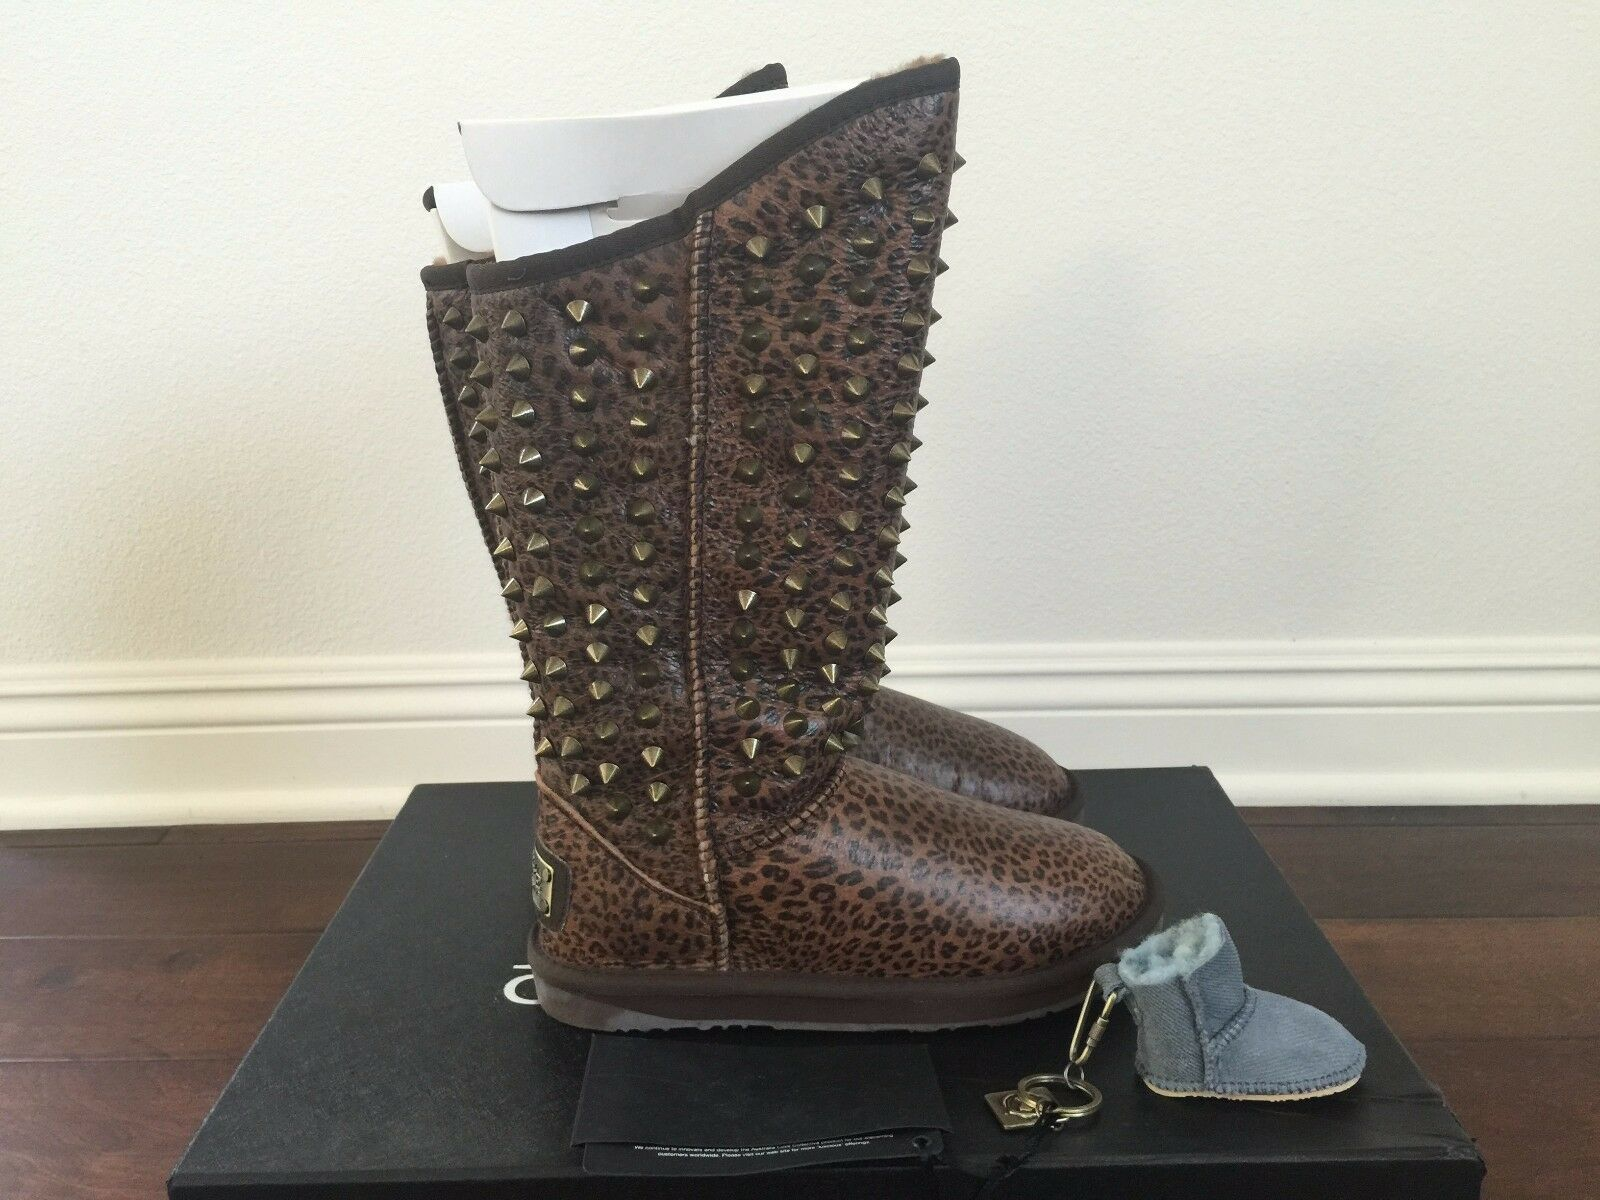 Australia Luxe Collective Pistol Tall Leopard Studded Boots w/ Free Key Chain